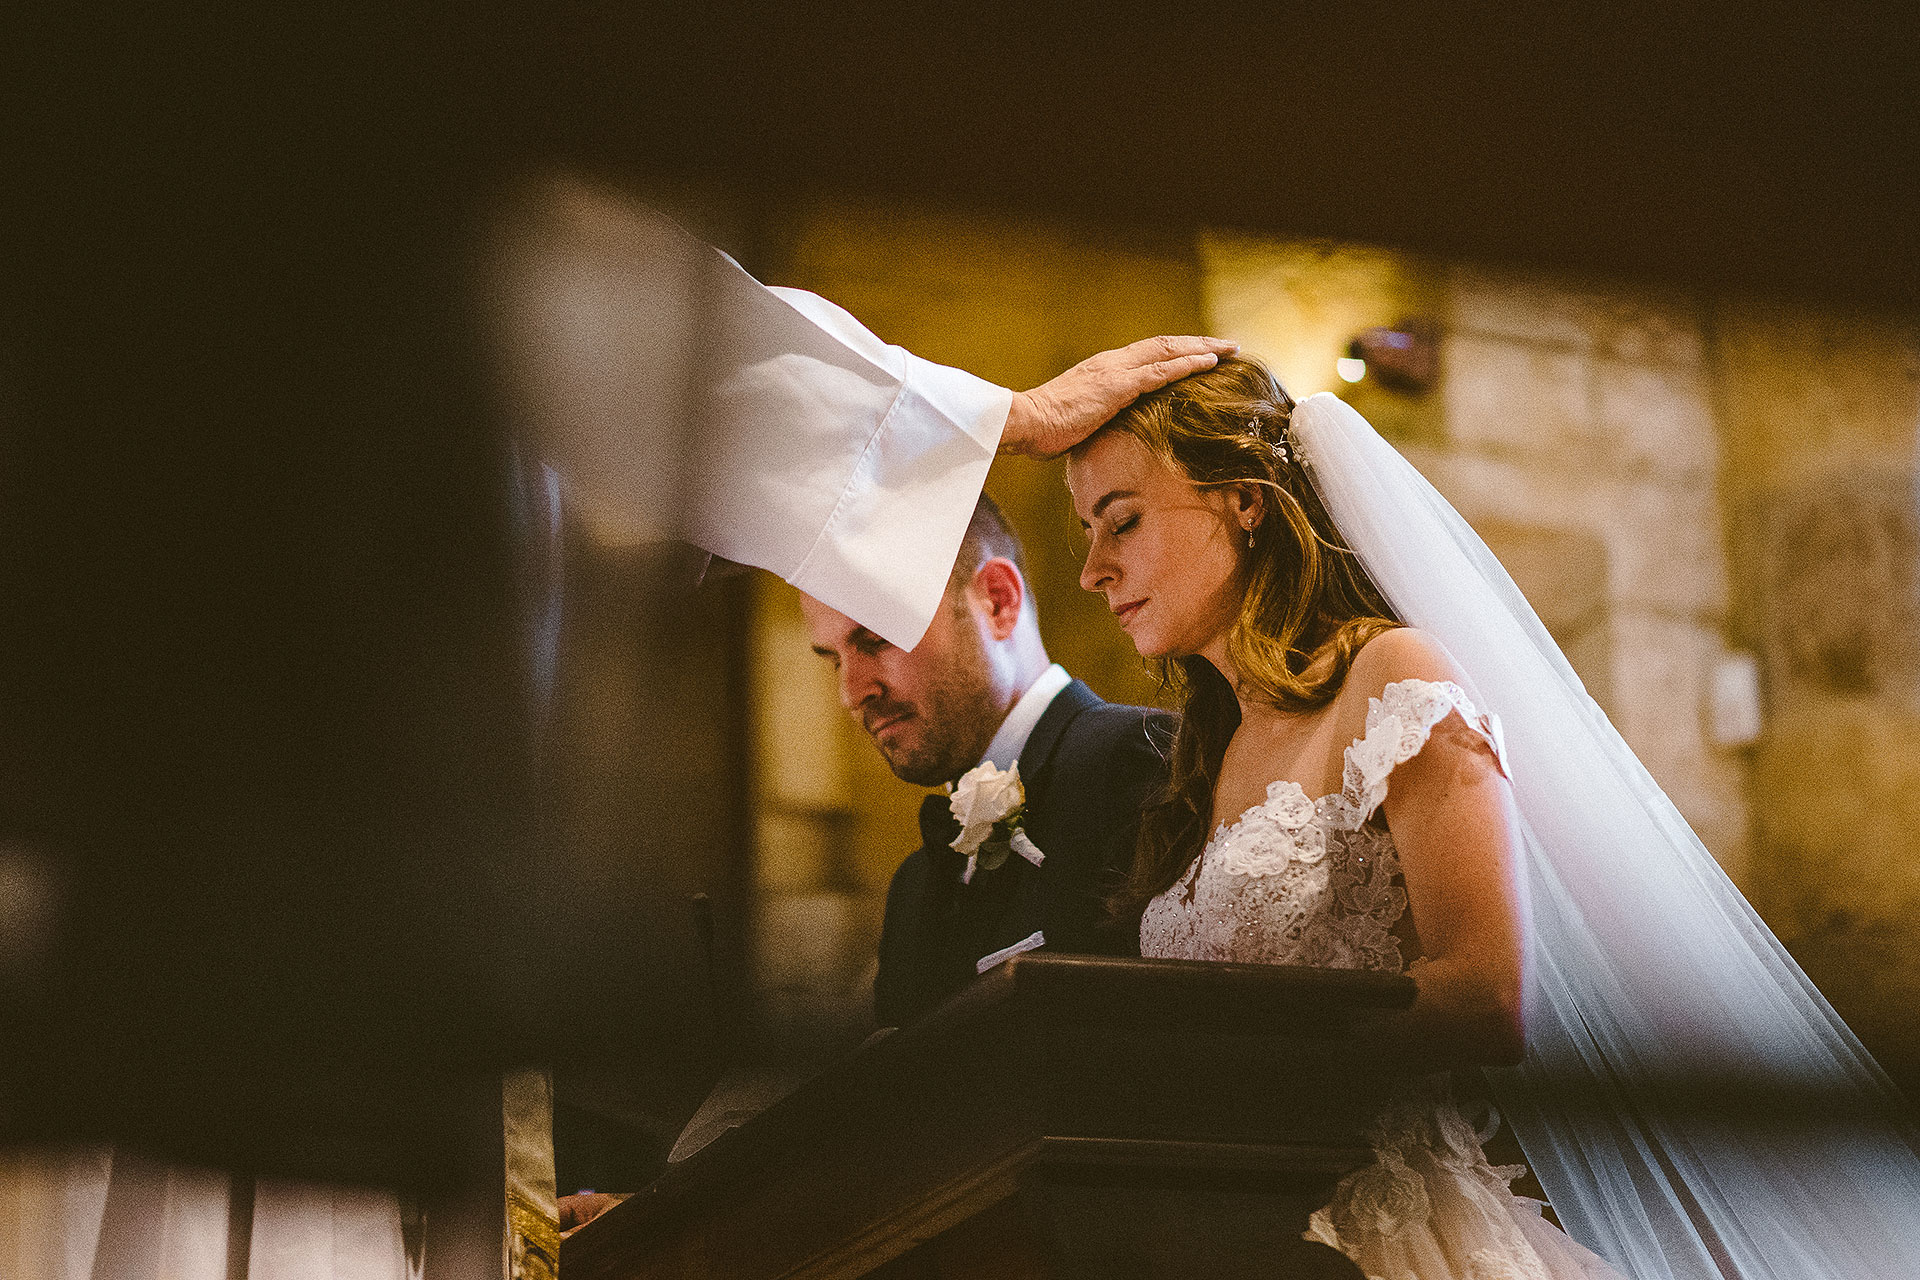 wedding photographer borgo stomenanno tuscany